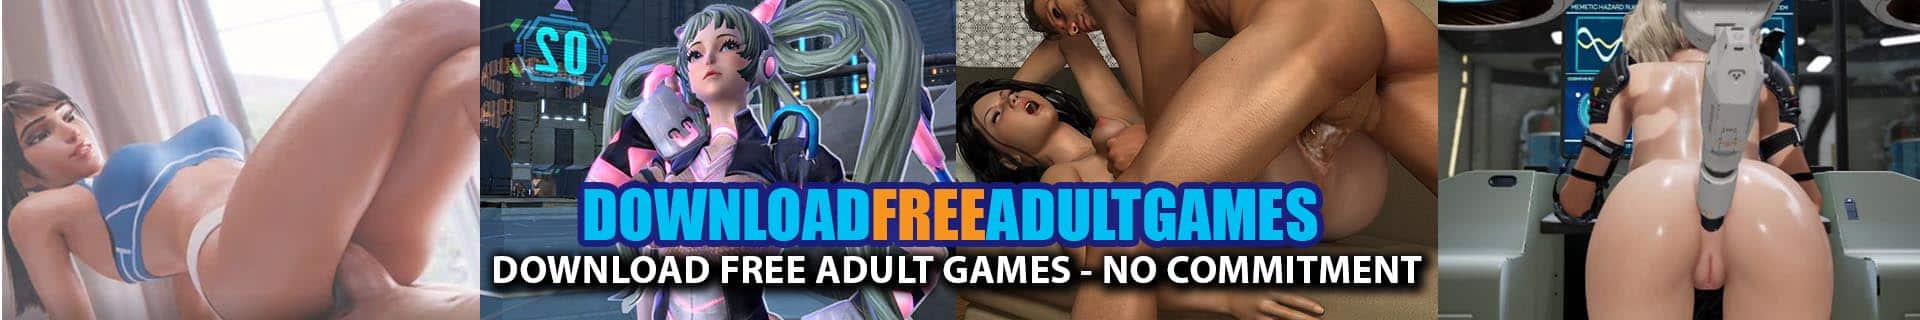 Free Adult Games Downloads